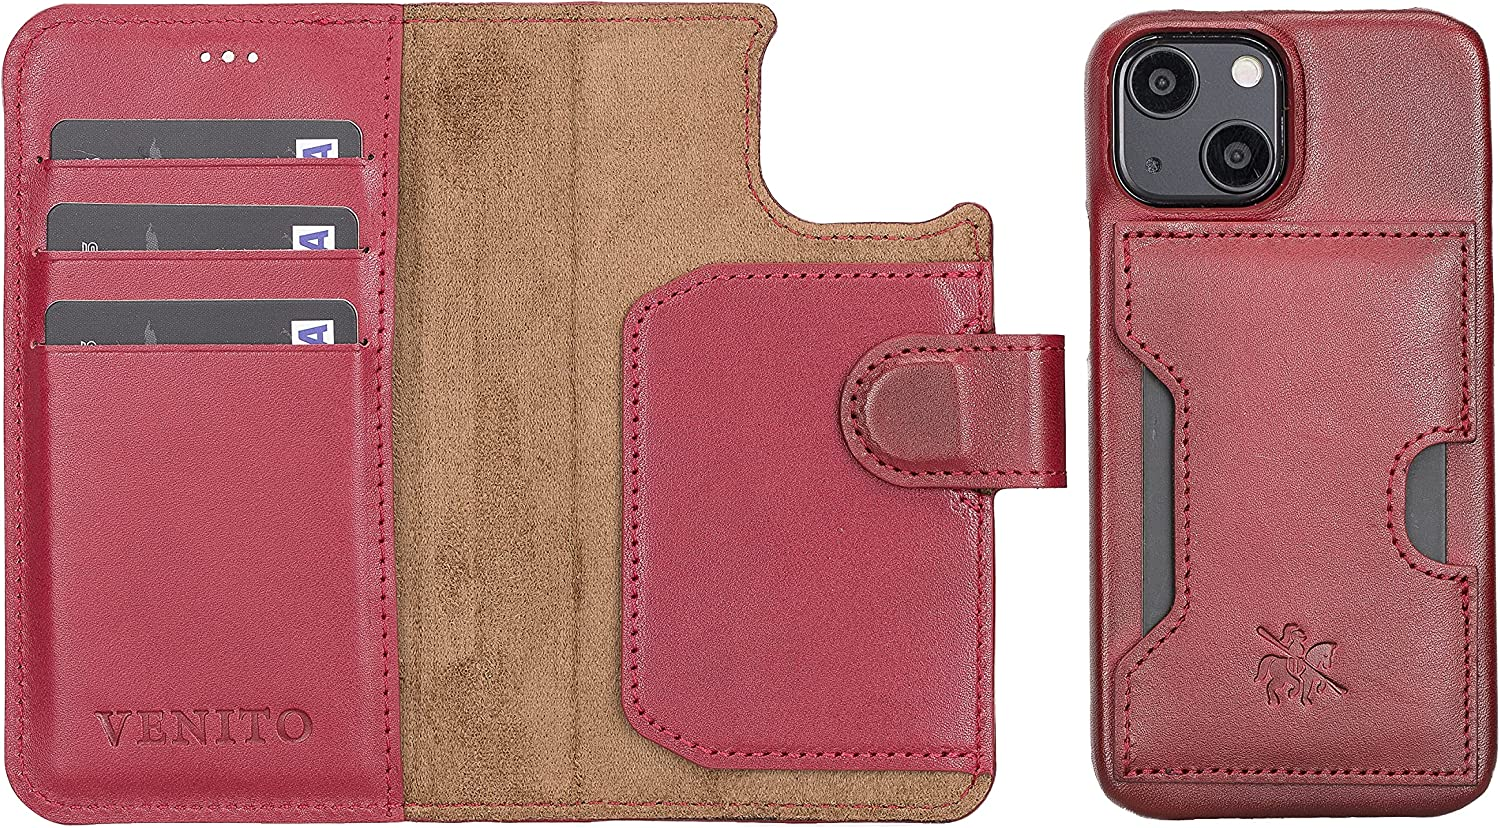 Venito Florence Leather Wallet Phone with Case iPhone Max Max 45% OFF 41% OFF Compatible